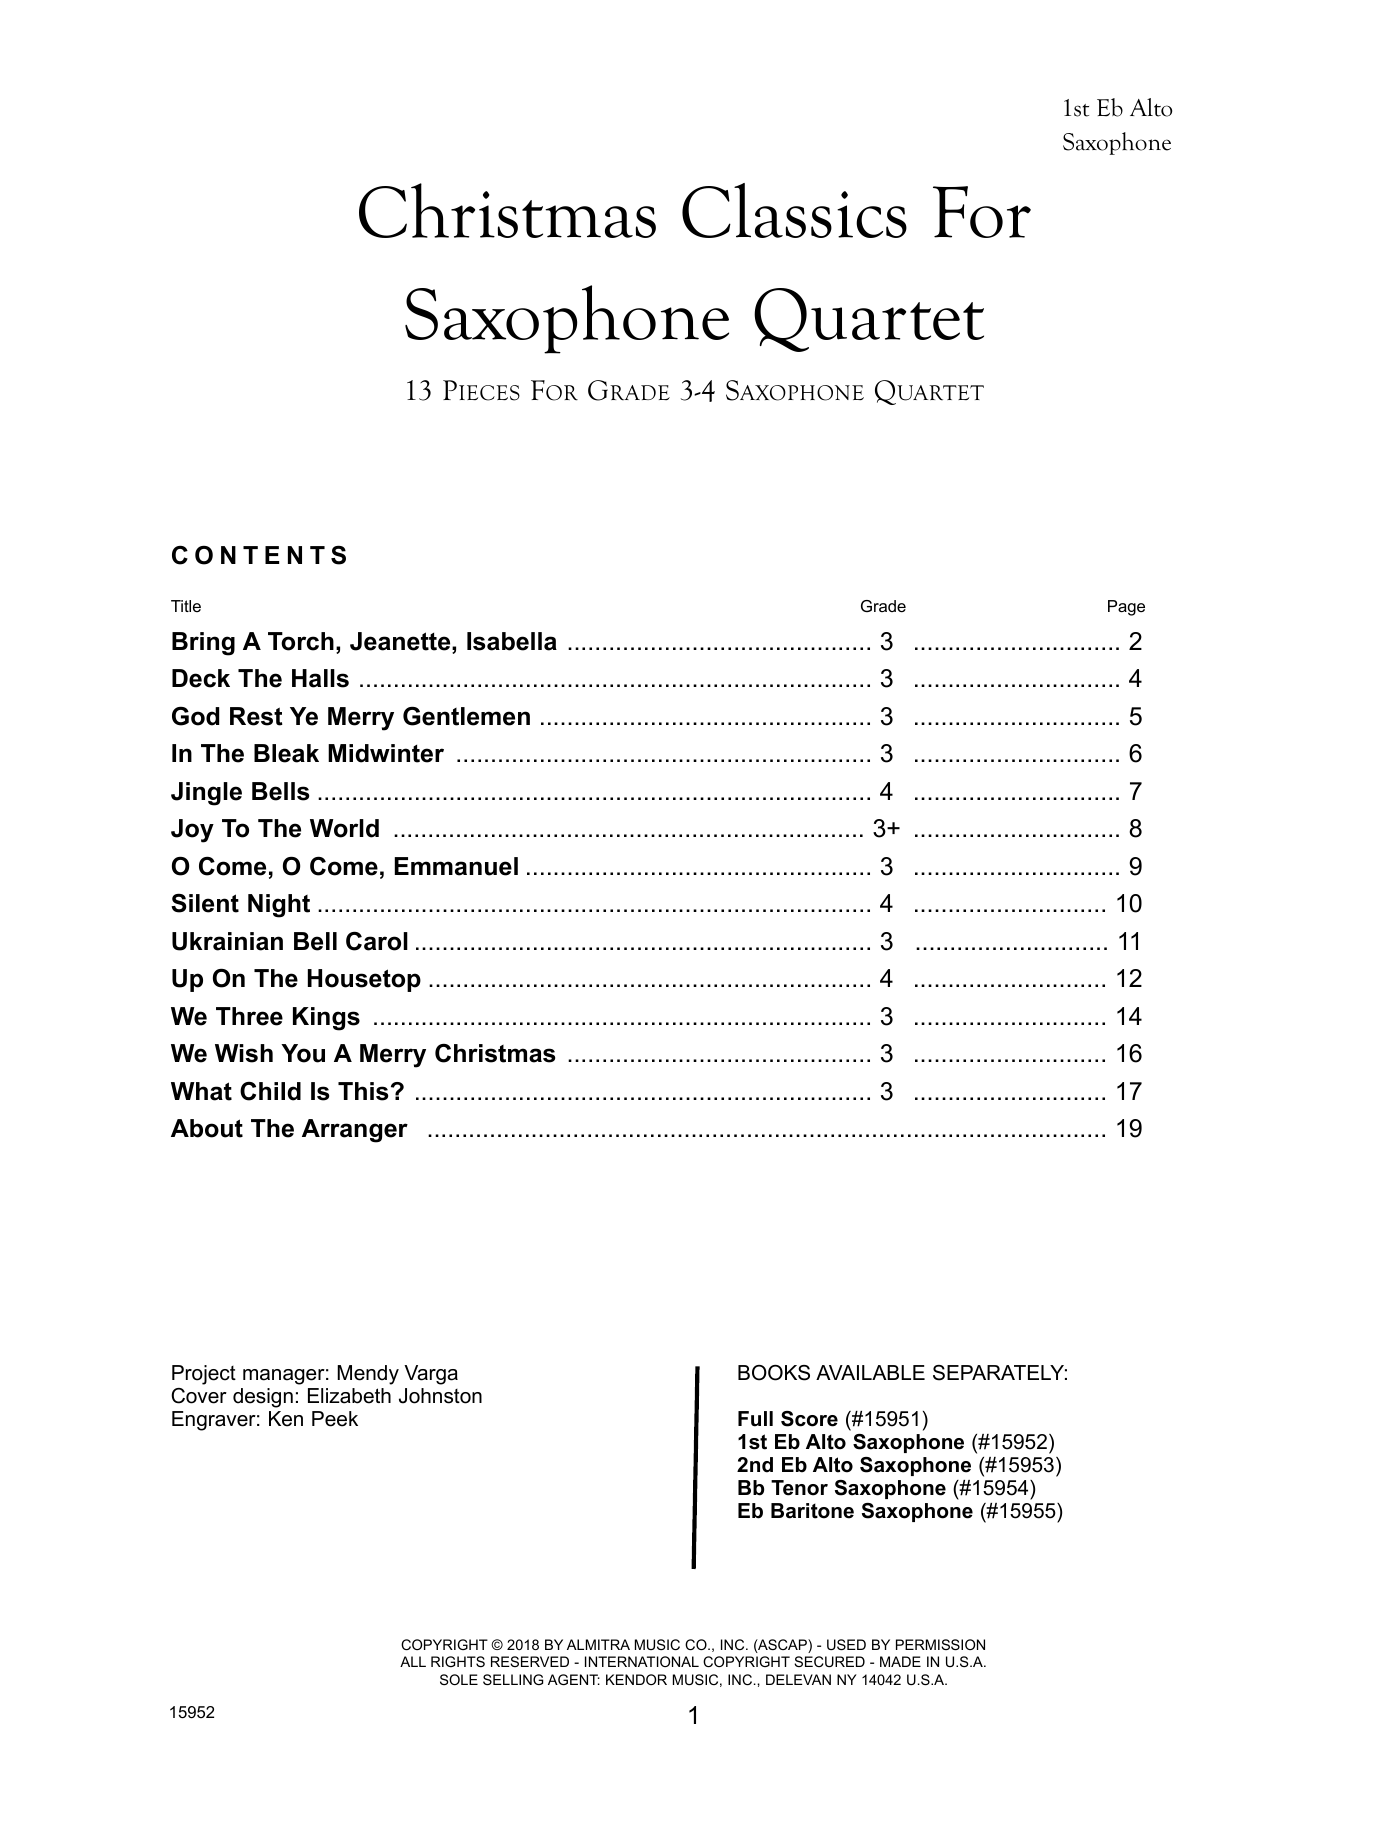 Christmas Classics For Saxophone Quartet - 1st Eb Alto Saxophone Partituras Digitales